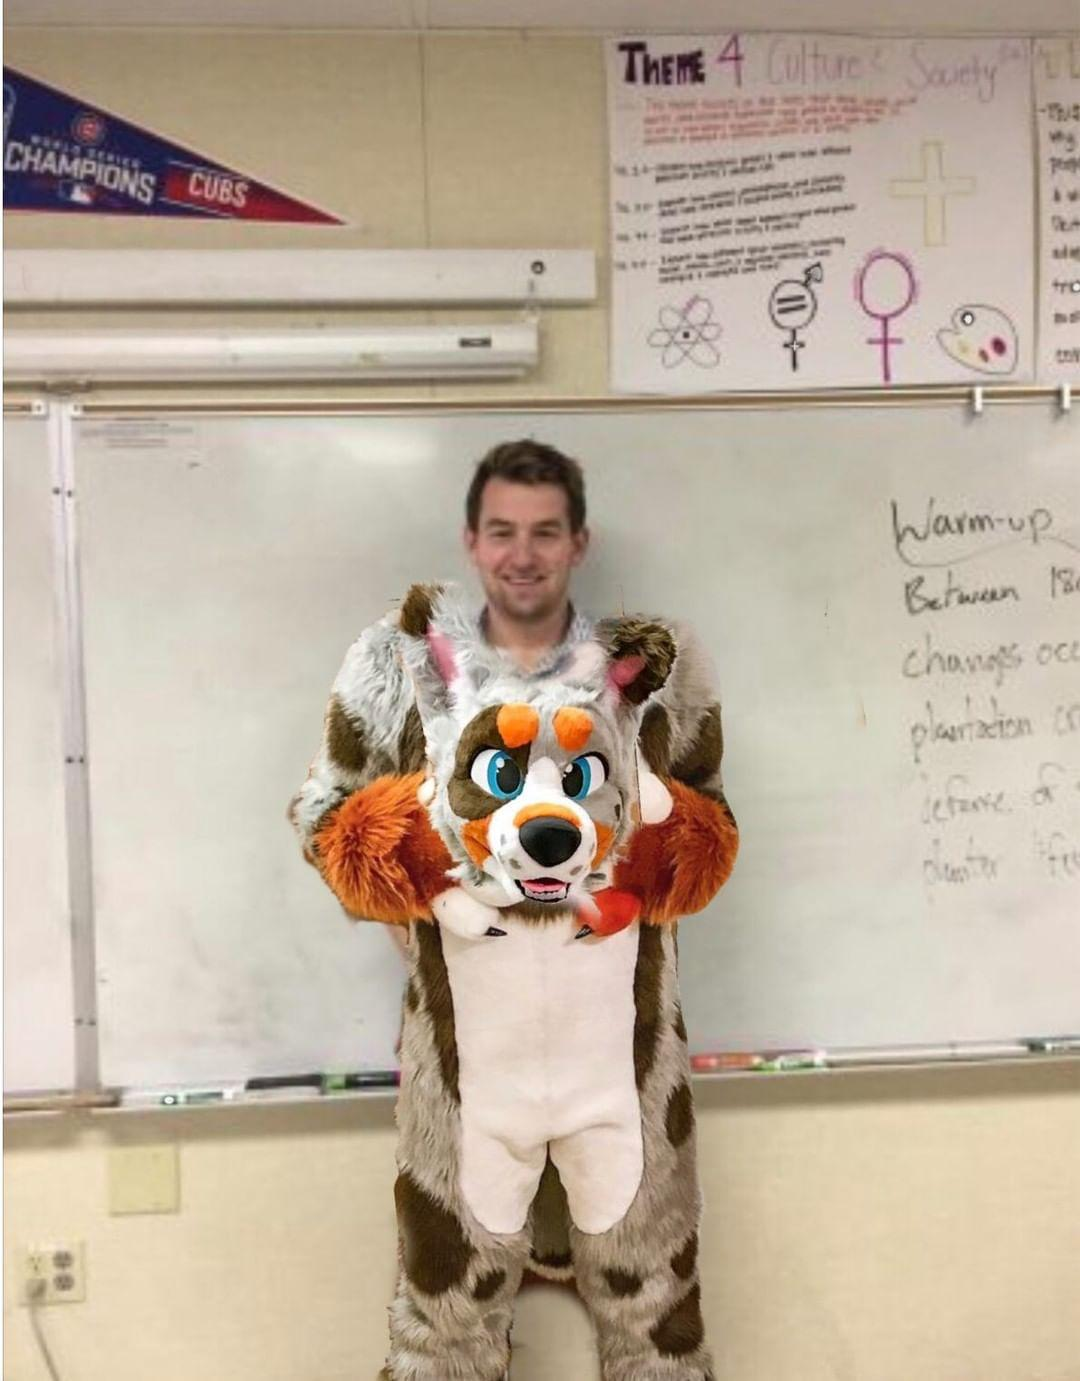 The now famous photoshopped image of Mr. Frattini in furry costume.